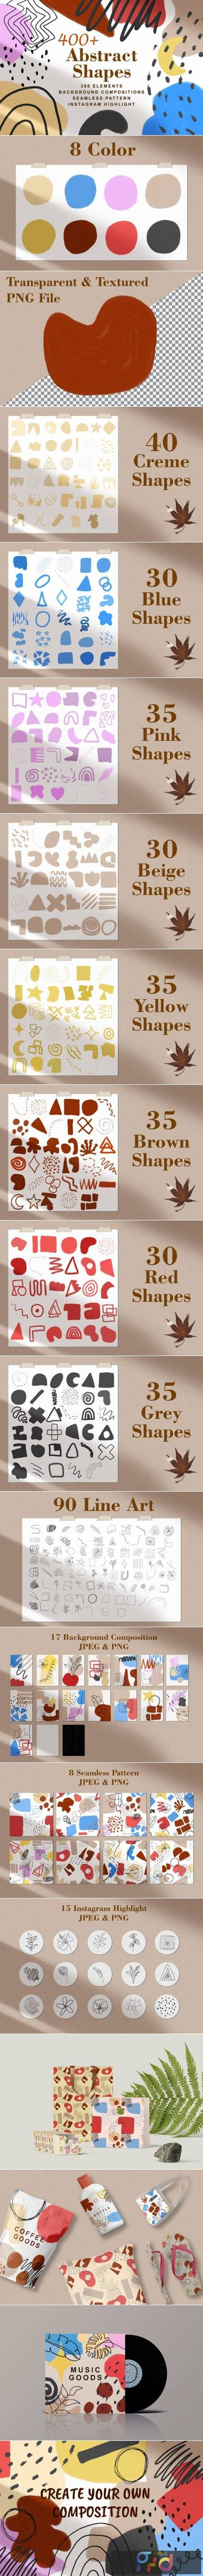 400+ Abstract Shapes Textured Elements 6676427 1